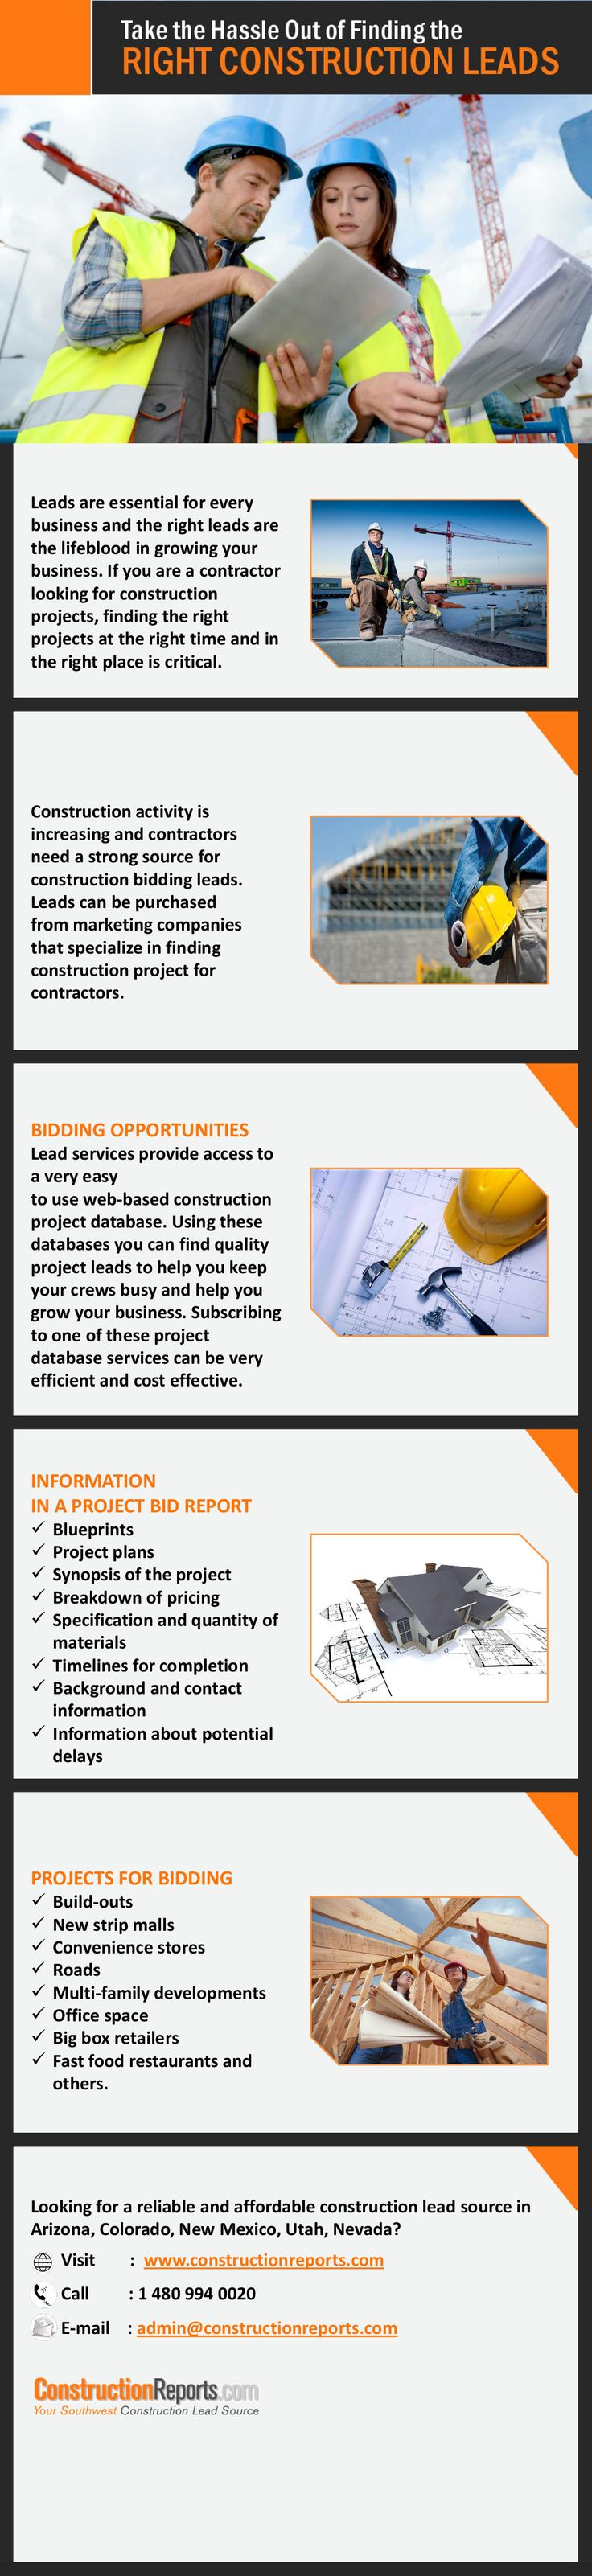 Construction Lead Source Arizona – Find Best Jobs at Best Price! - Looking for a reliable and affordable construction lead source in Arizona? Constructionreports.com helps Arizona contractors find the most bidding opportunities available in the state. Visit http://www.constructionreports.com/